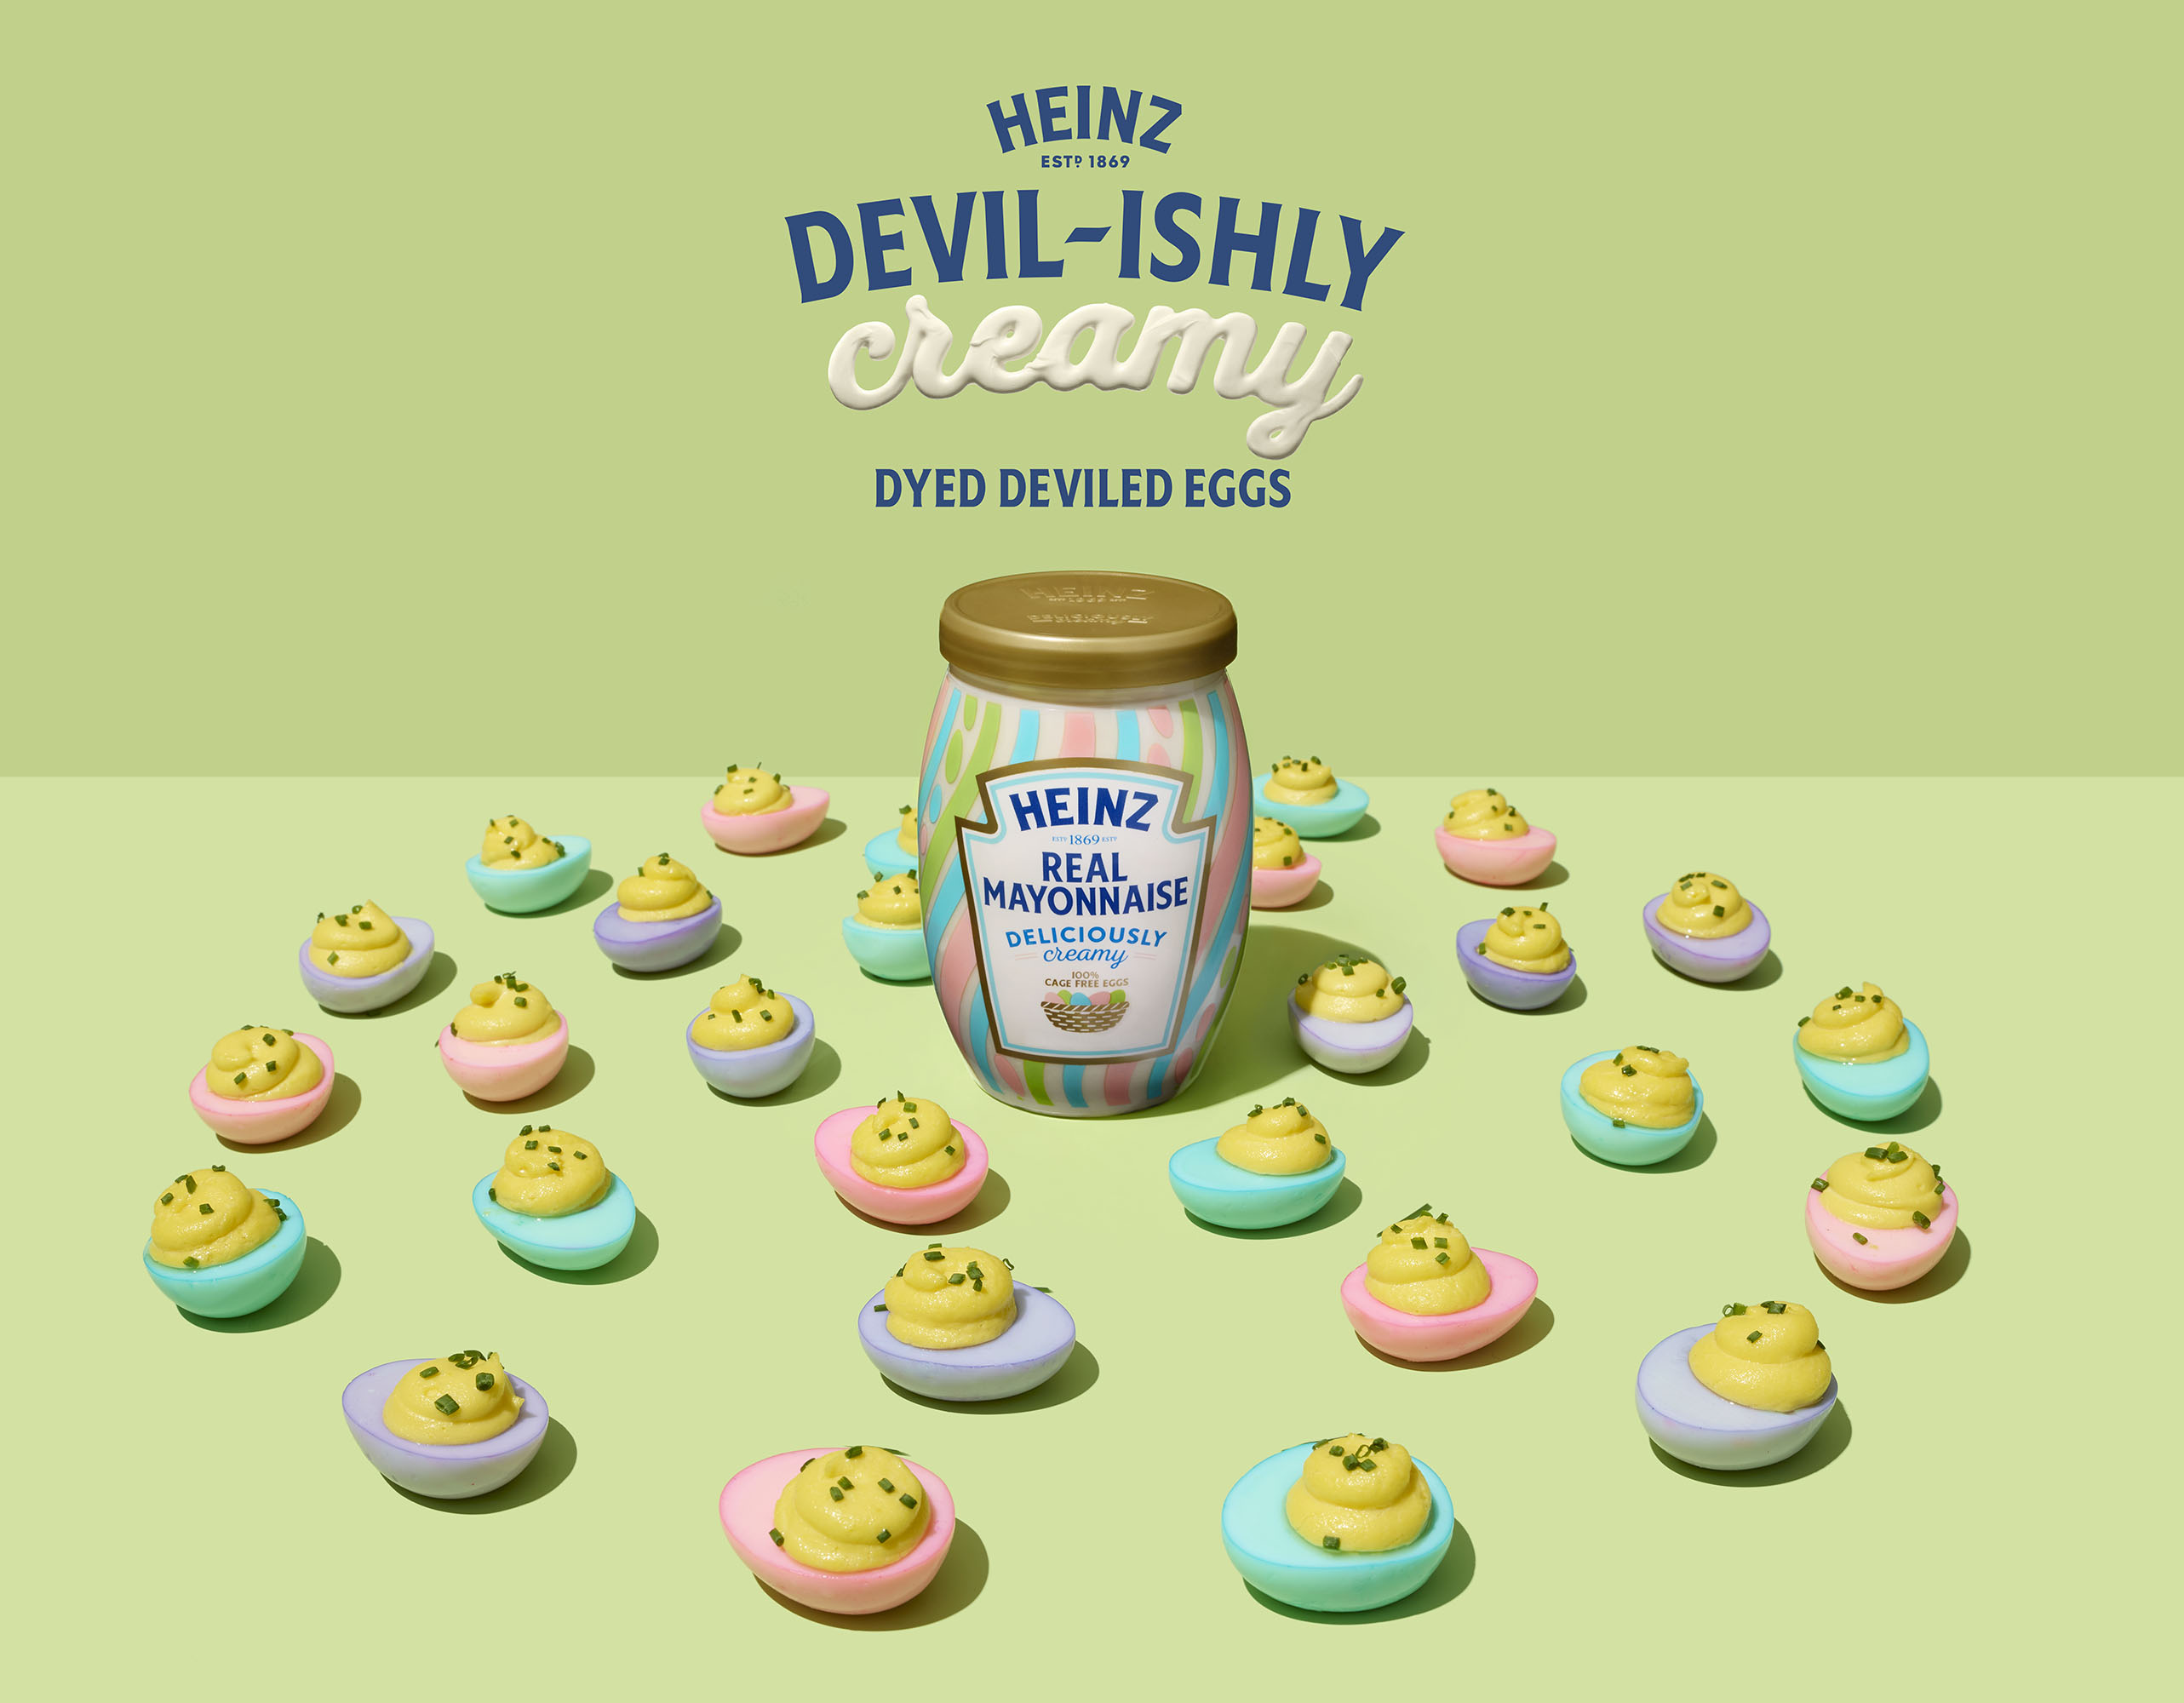 STILL_Heinz_Deviled_Eggs_CROP_V2